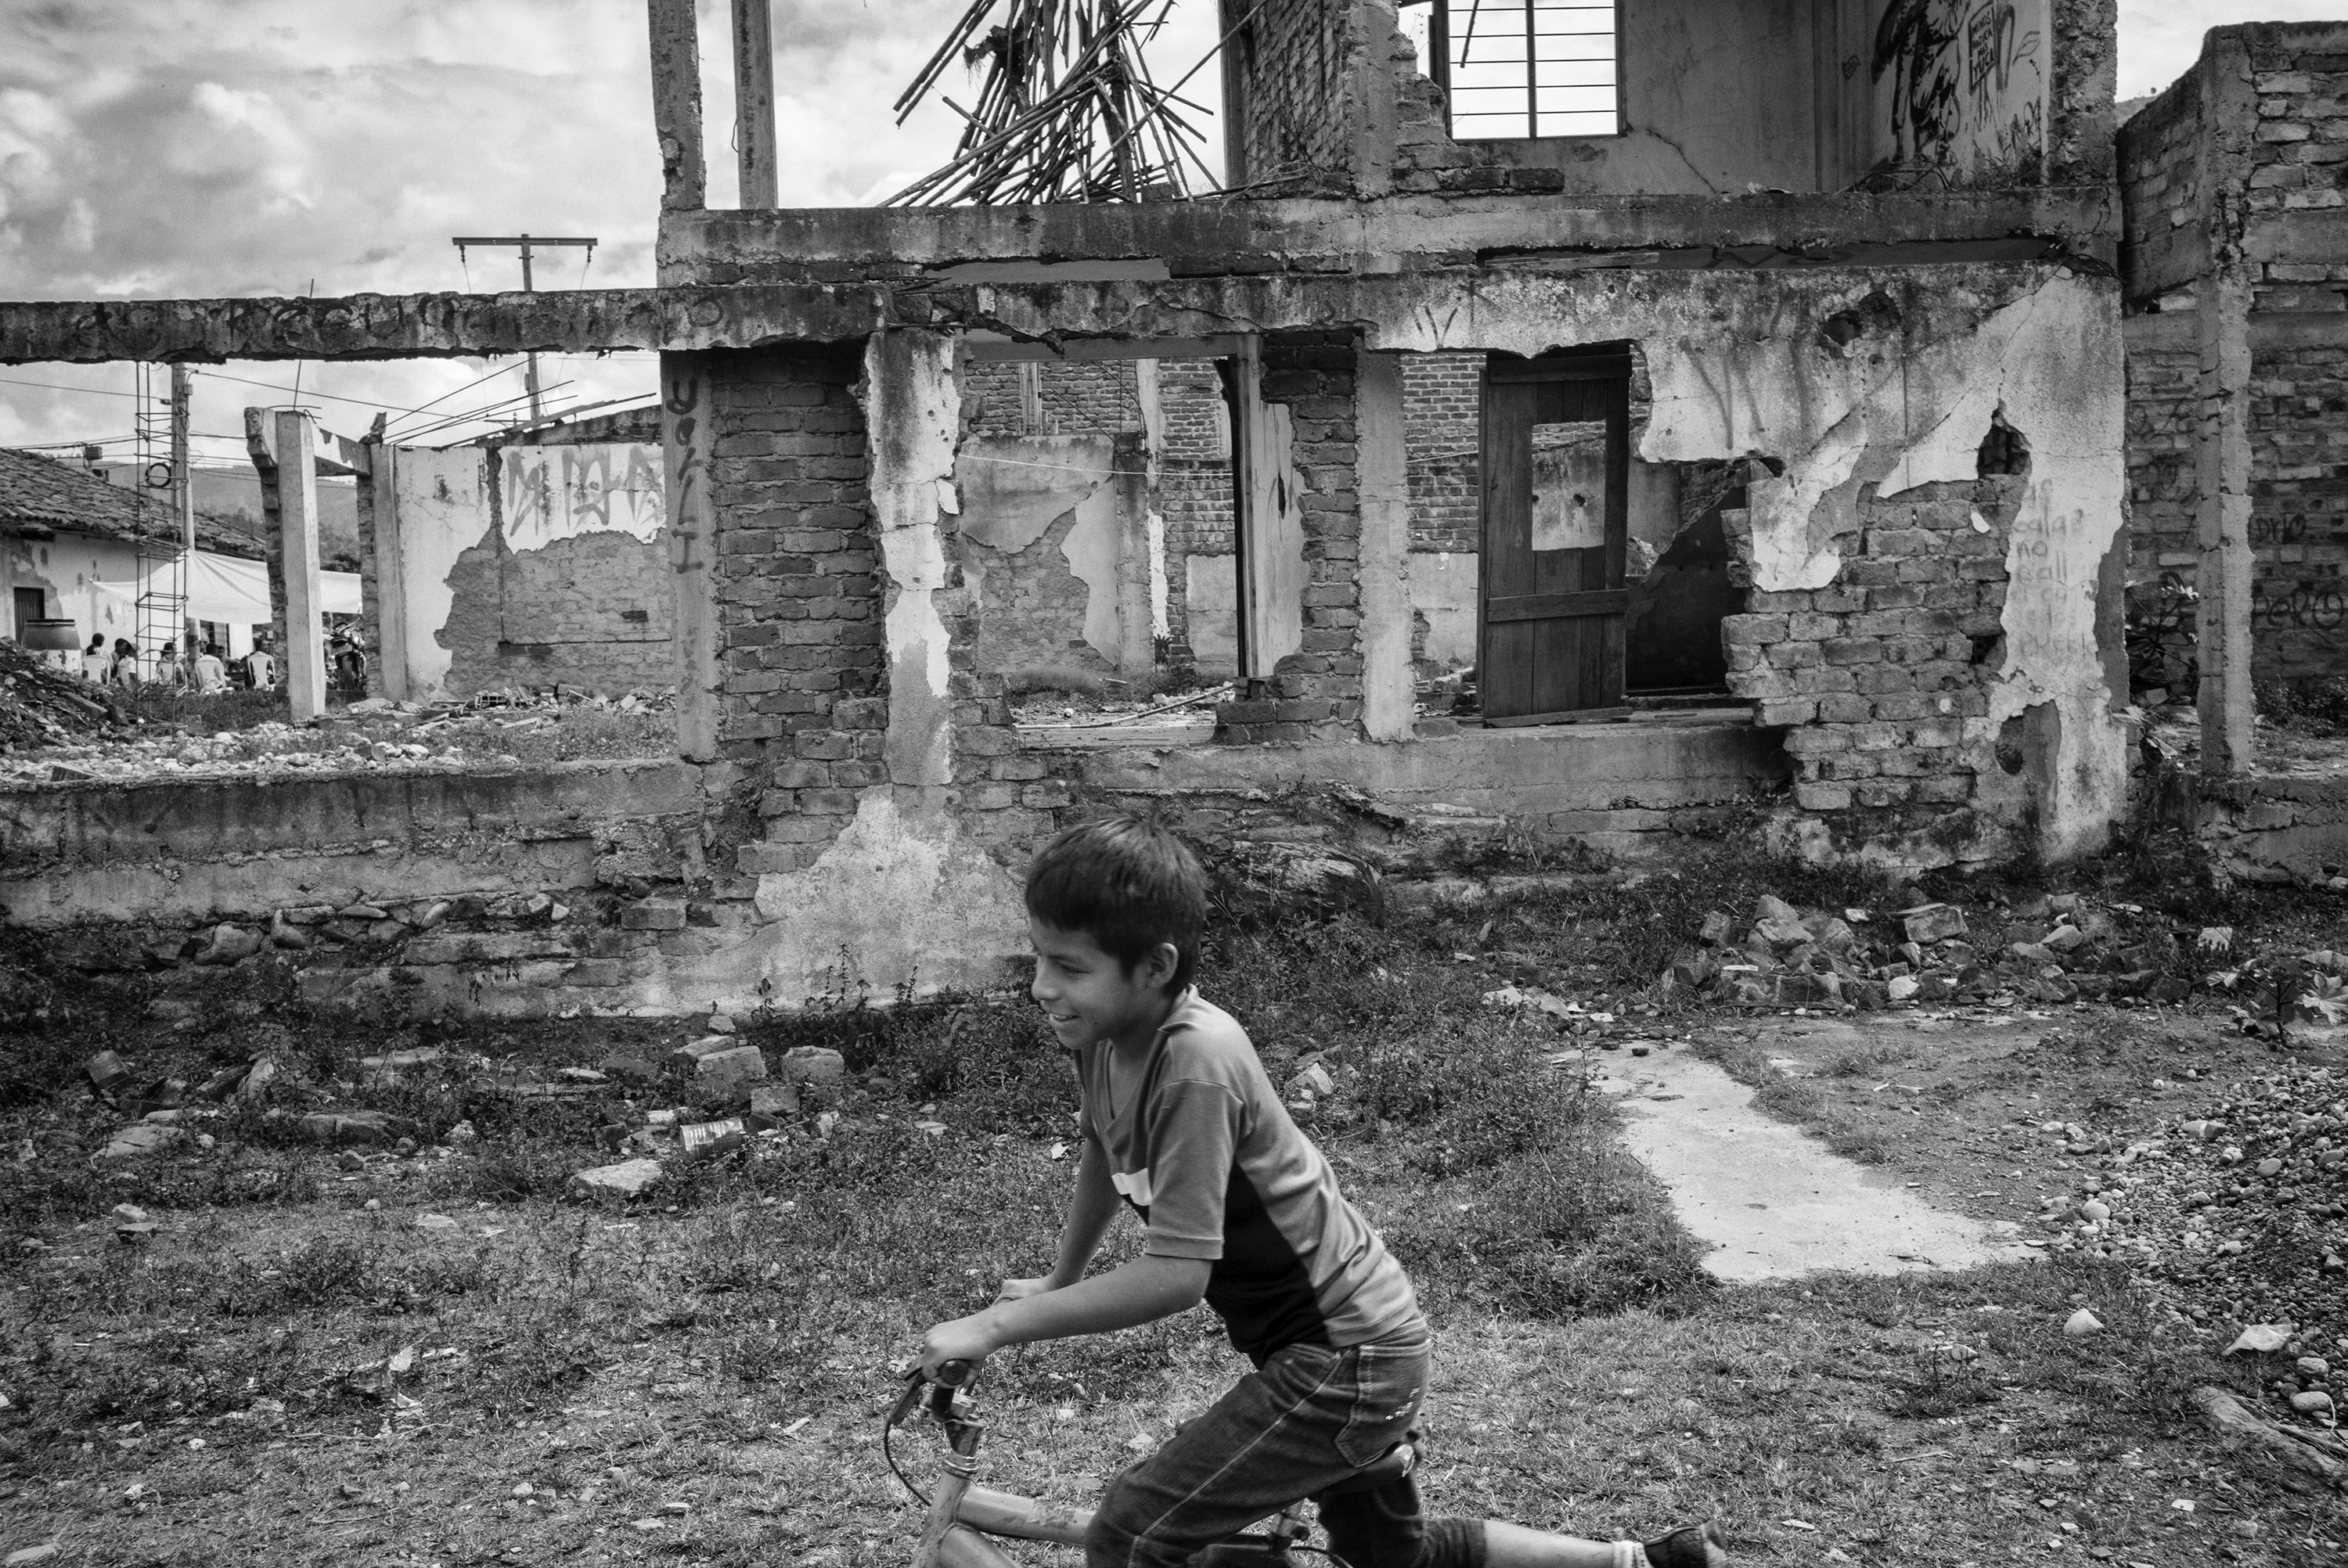 A child rides a bicycle in front of                                   the ruins of a house destroyed in an attack by FARC in the com- munity of Toribio, Colombia. Many regions of Colombia have lived for more than 52 years under FARC's control. A Peace agreement reached in Havana, Cuba on Aug. 24, 2016 raised many doubts and fears among civilians about the future that awaits these communities neglected by the state, Cauca, Colombia, July 2016.